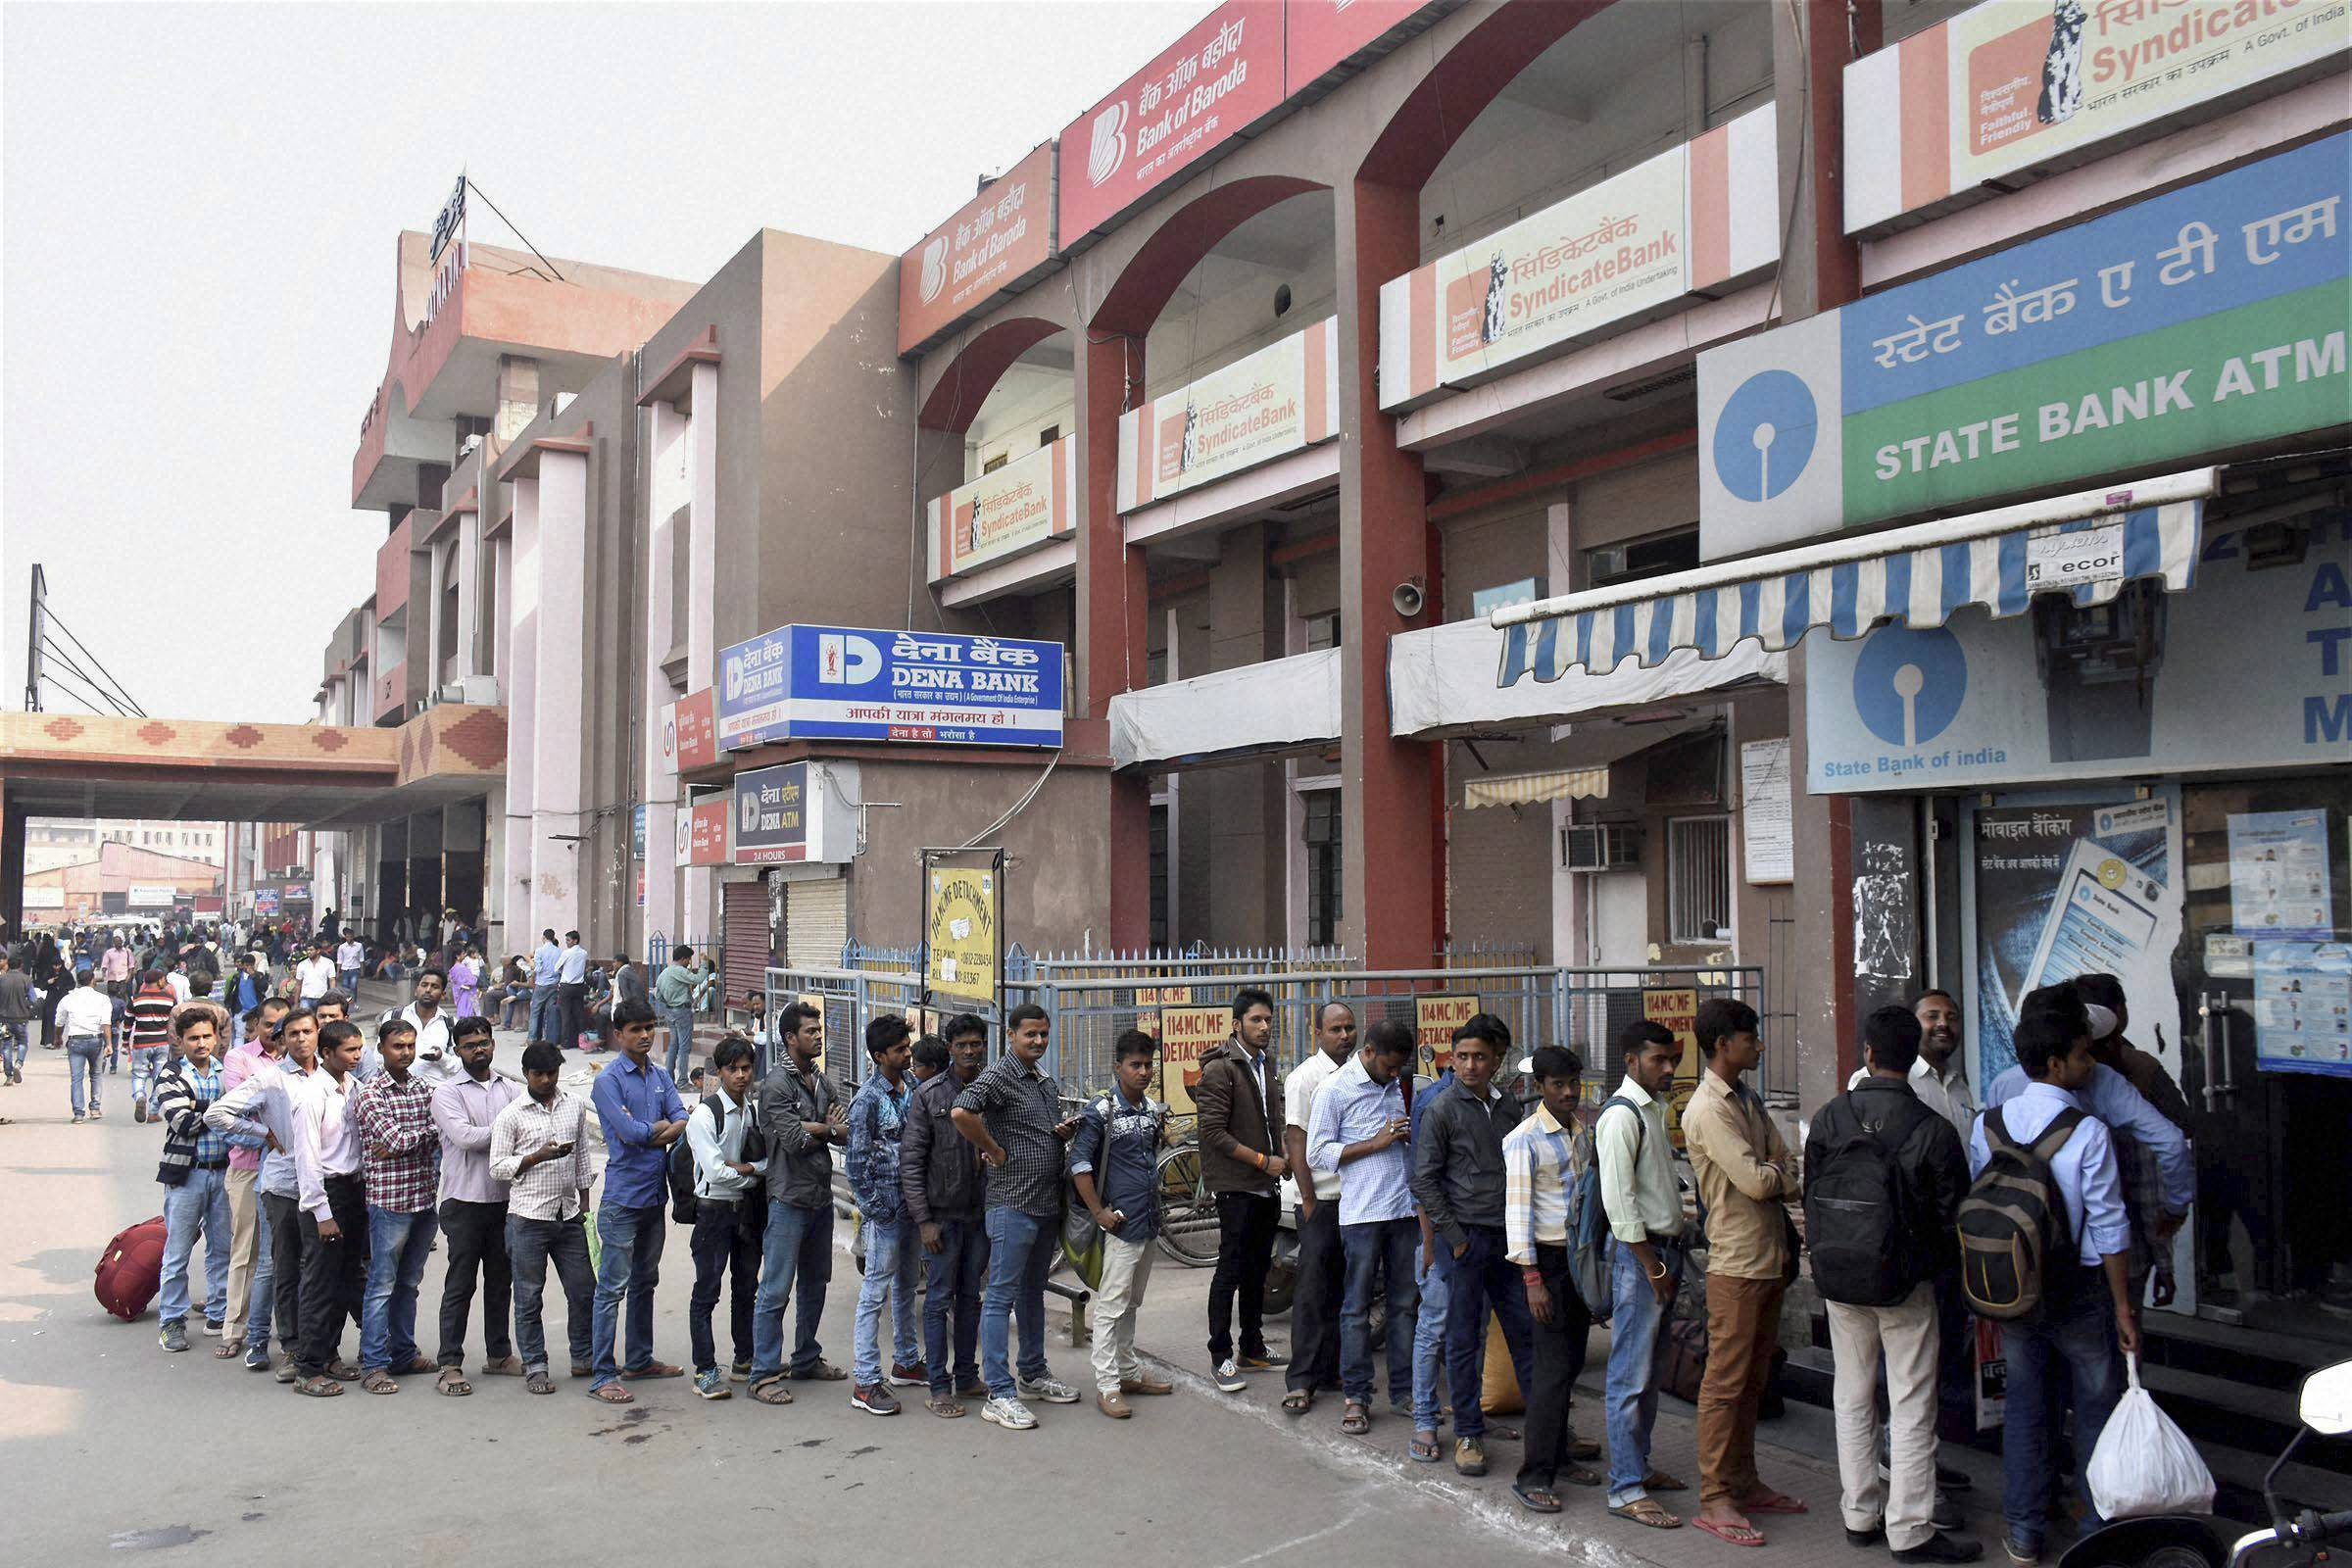 Demonetisation: 82,500 ATMs recalibrated to dispense new notes